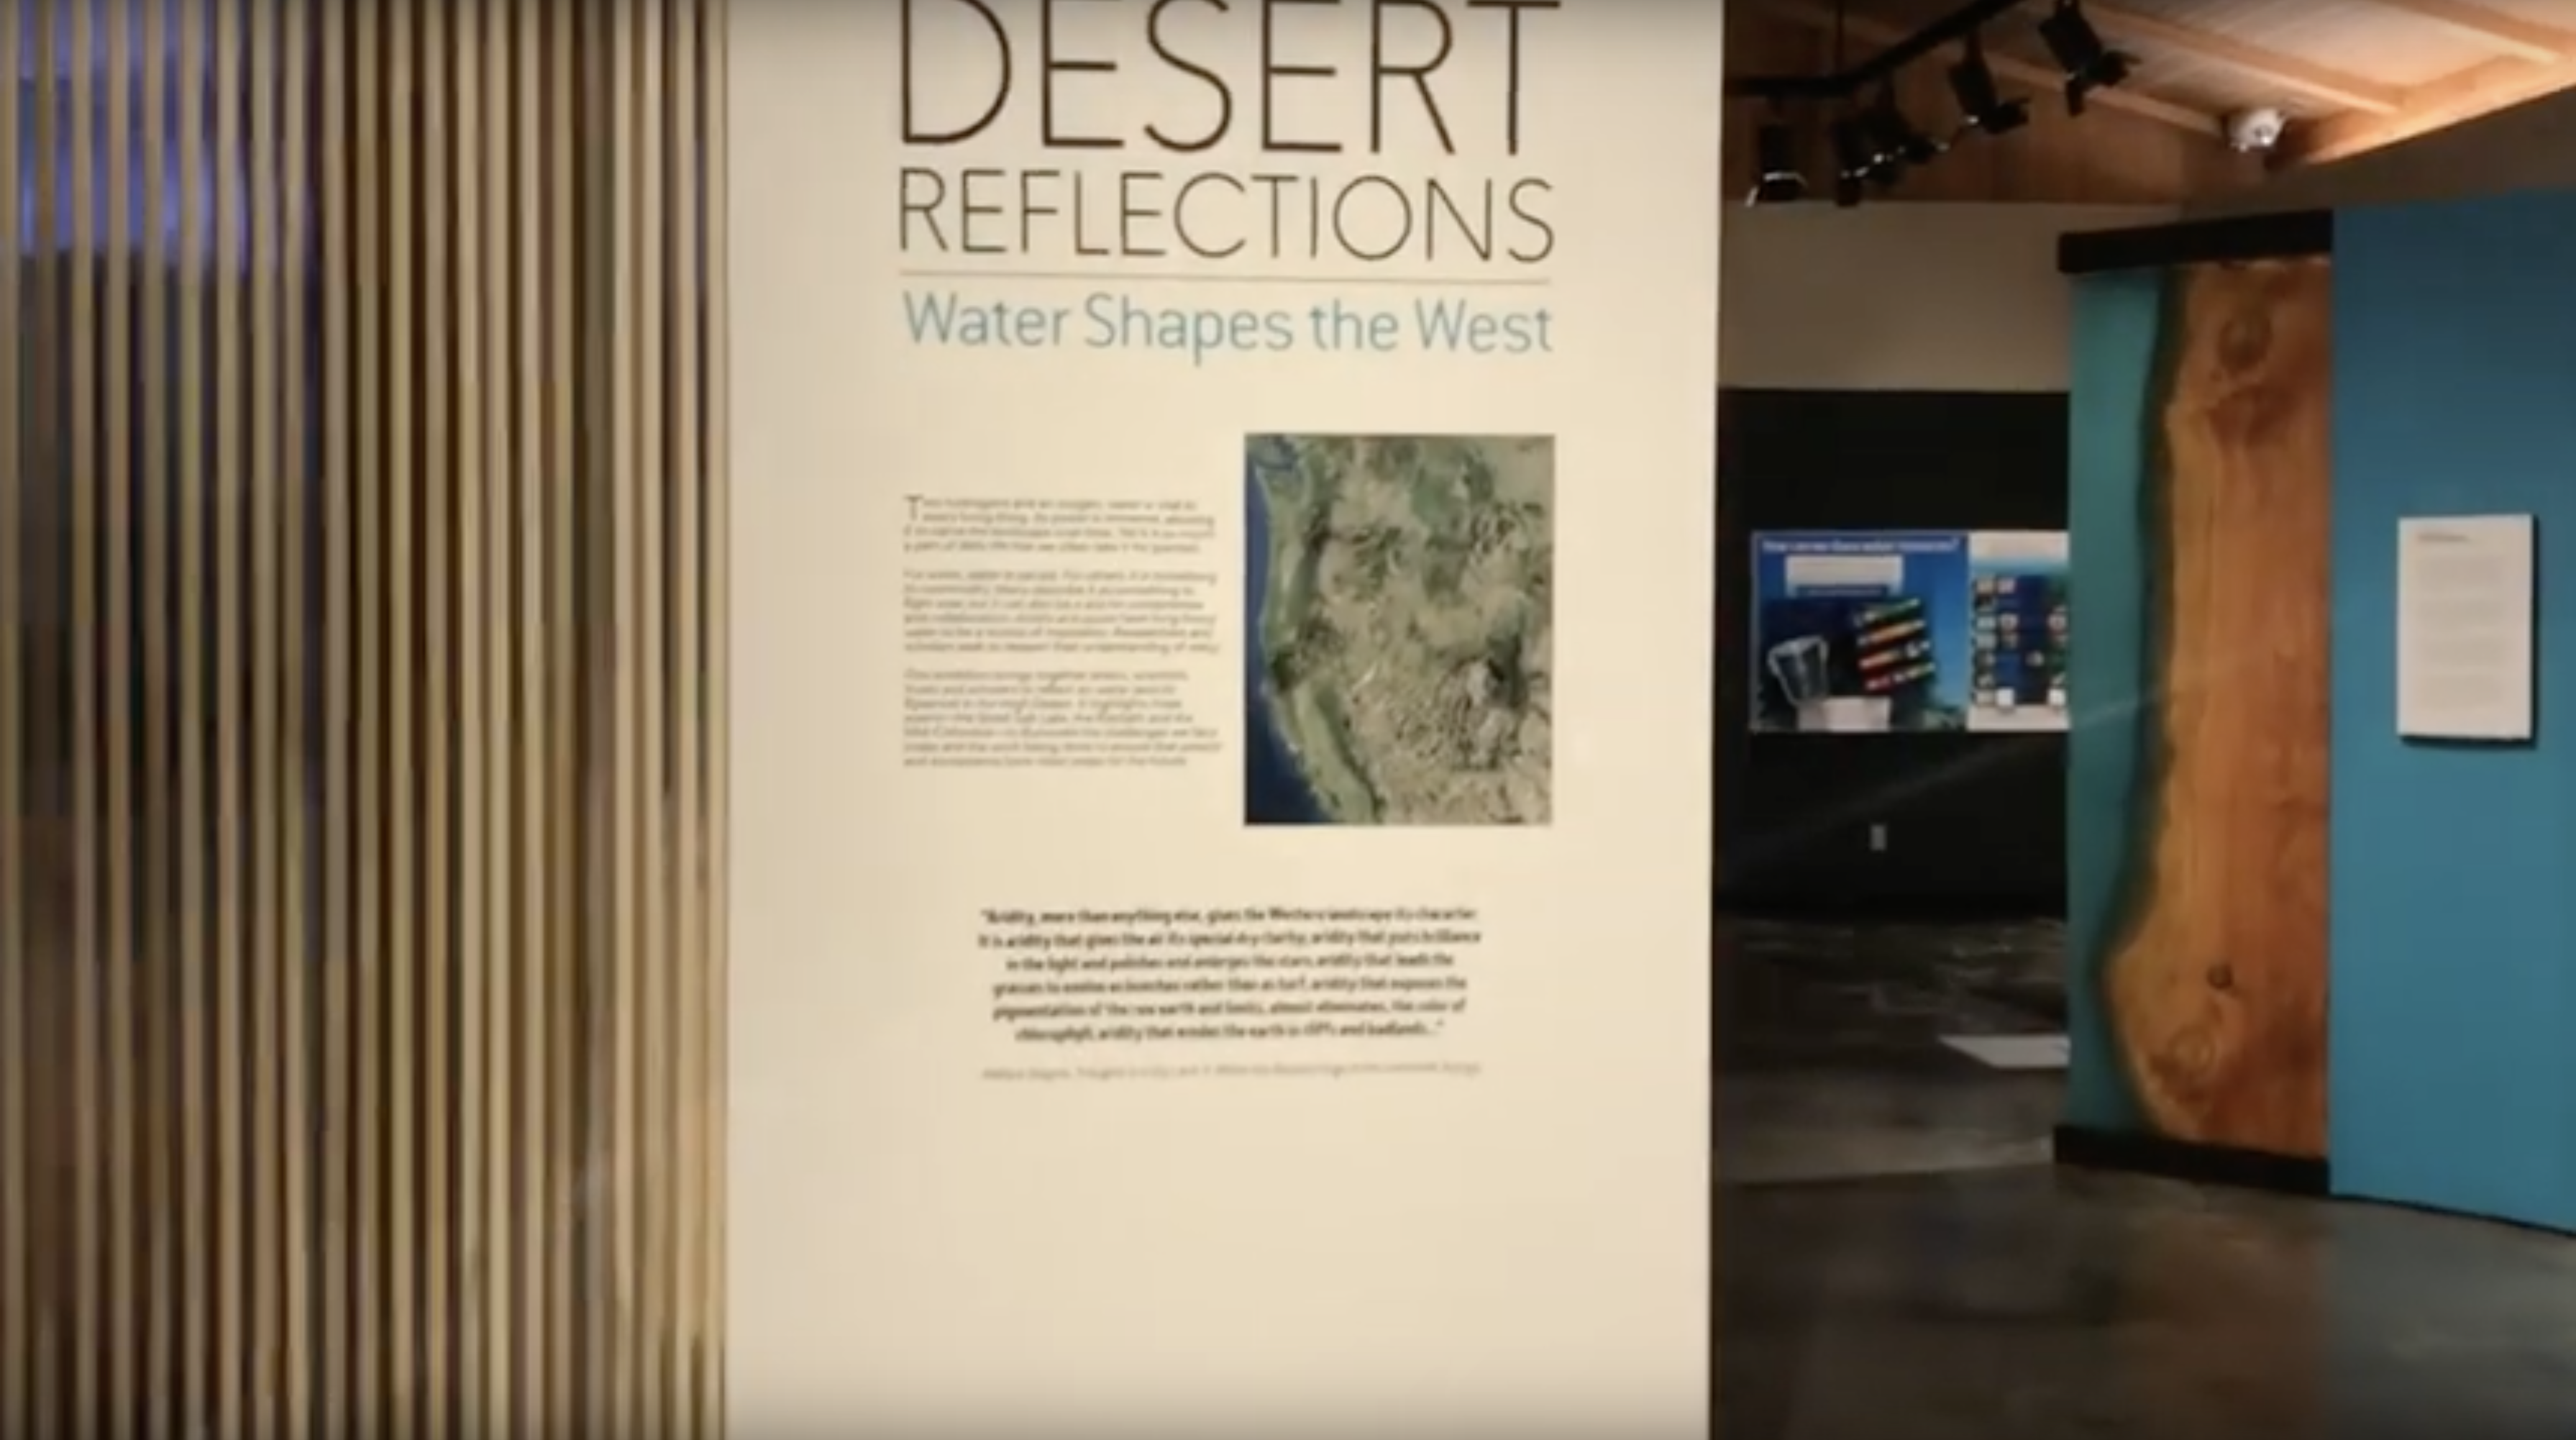 series Desert Reflections: Water Shapes the West